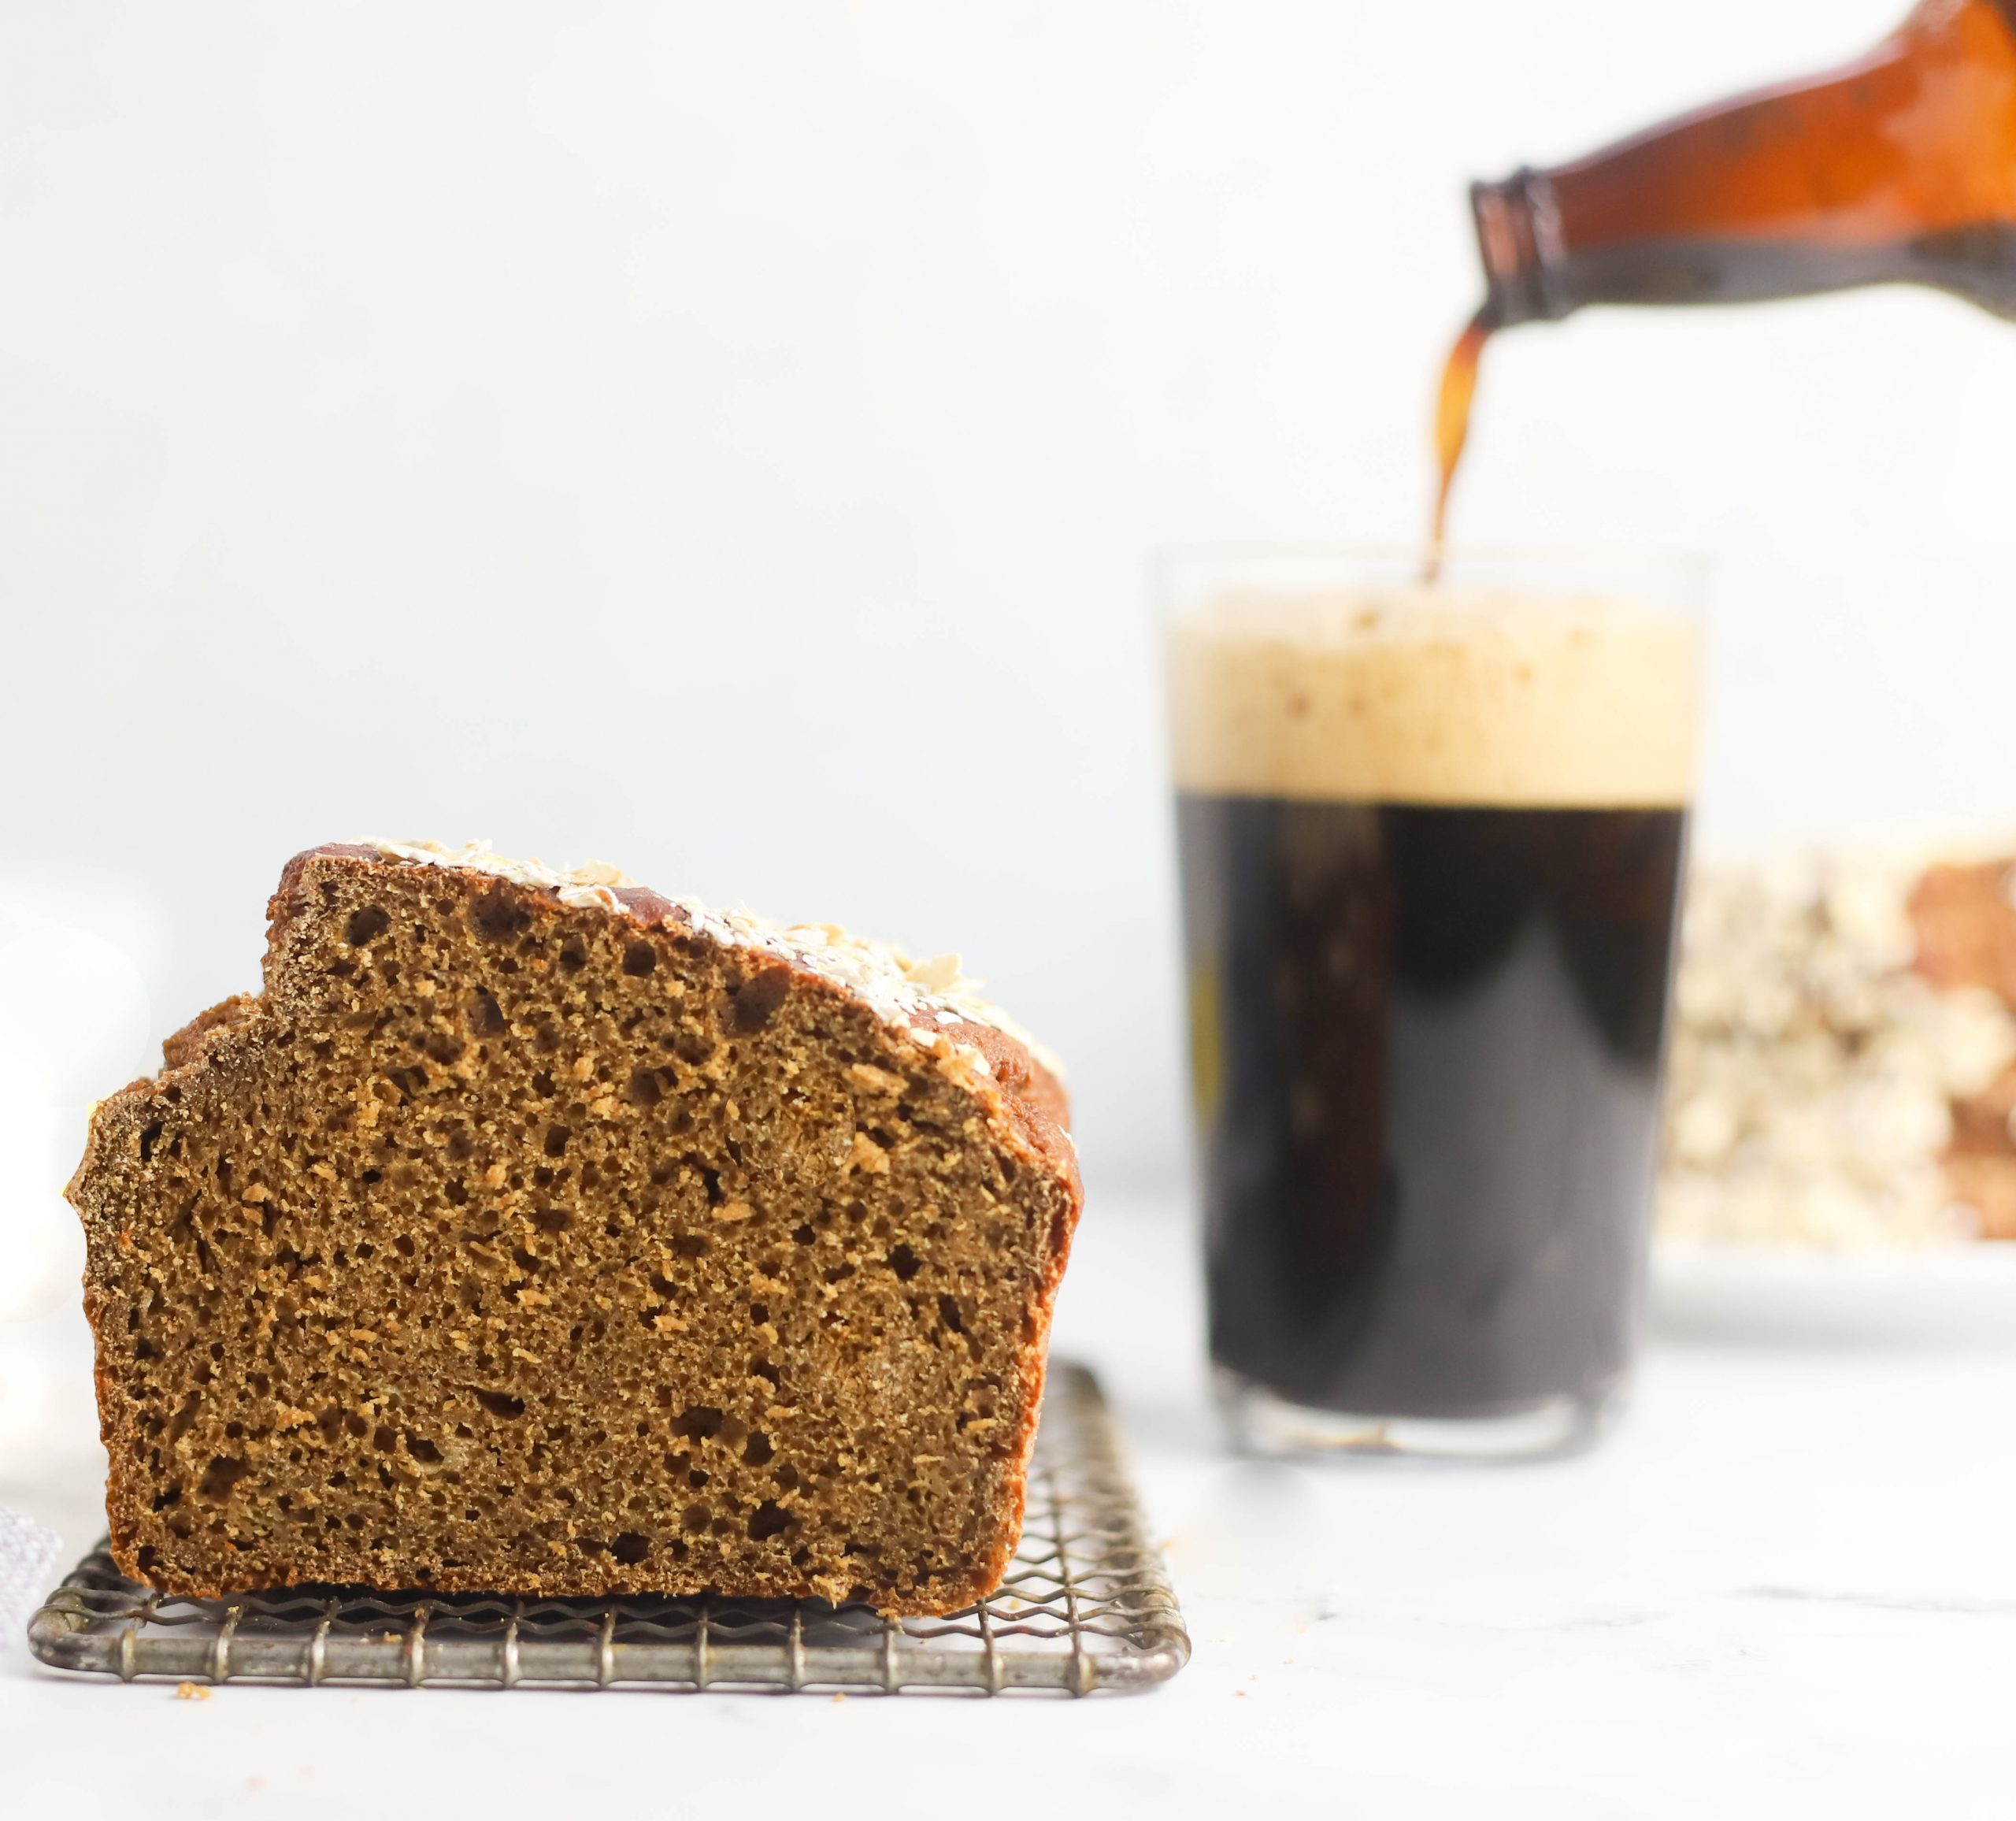 Guinness bread on a cooling rack and a Guinness beer being poured into a glass